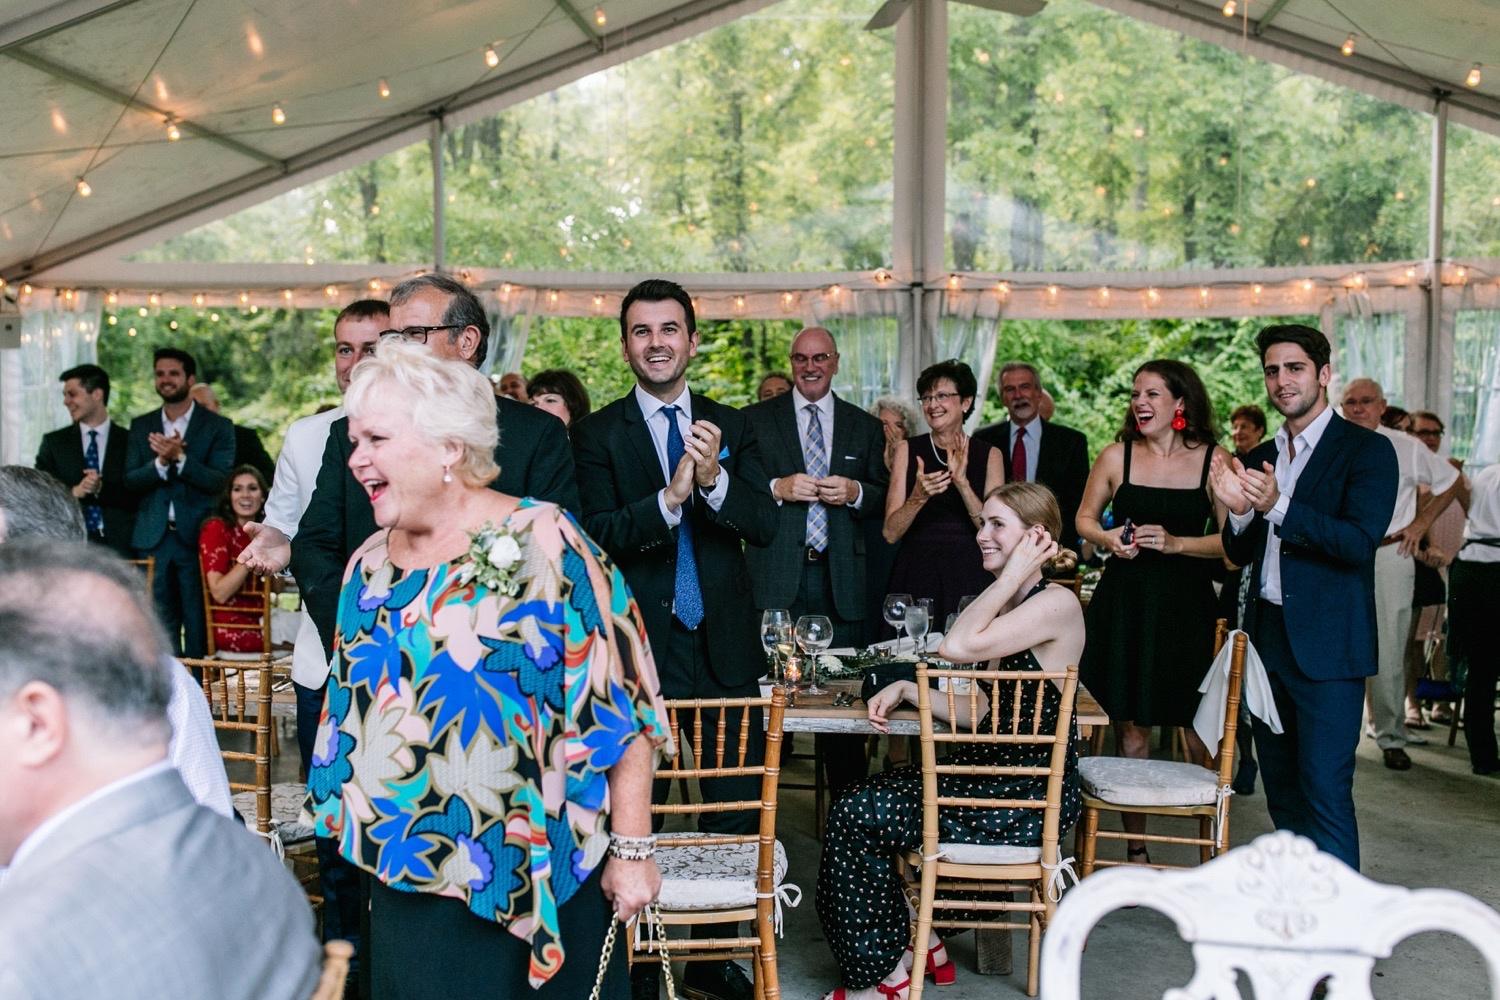 Clear Top Tent Wedding Inspiration